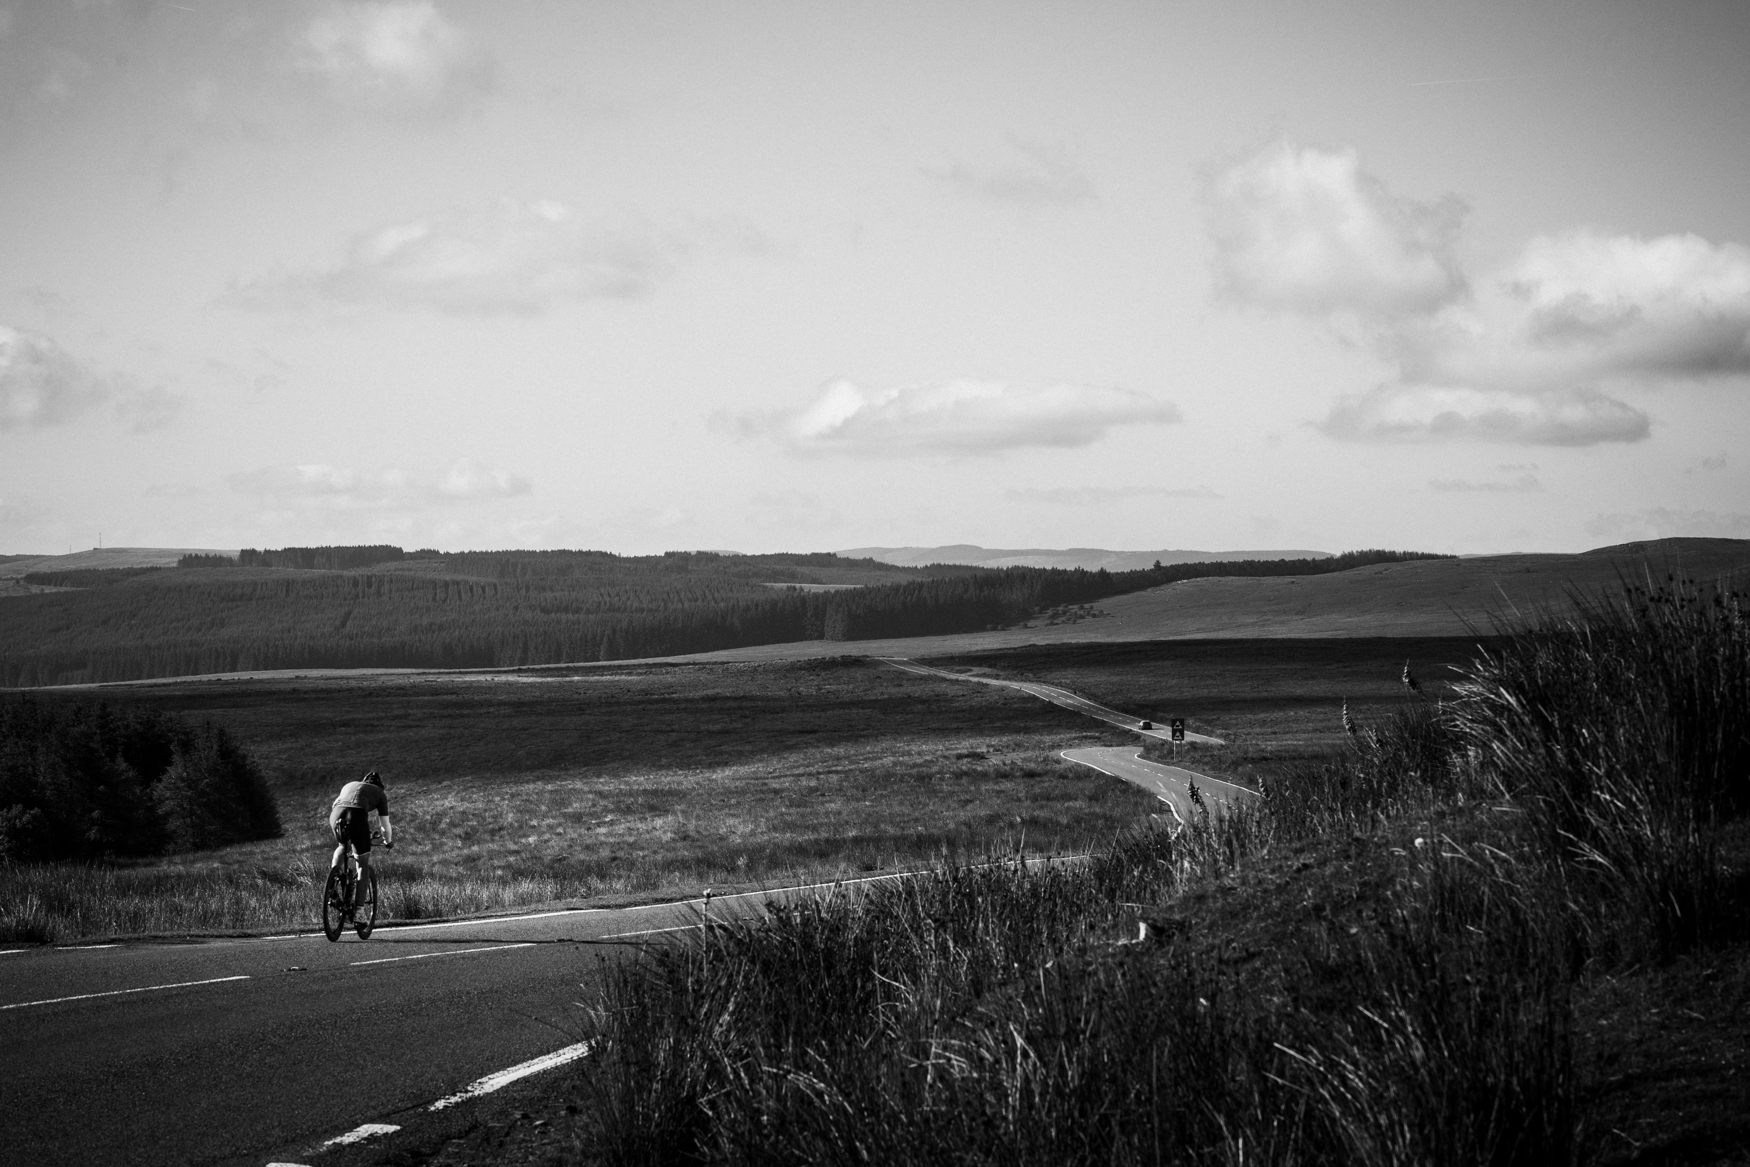 Alex-Sedgmond-Photography-Cardiff-RAS-BreconBeacons-Cycling-Photography-10.JPG